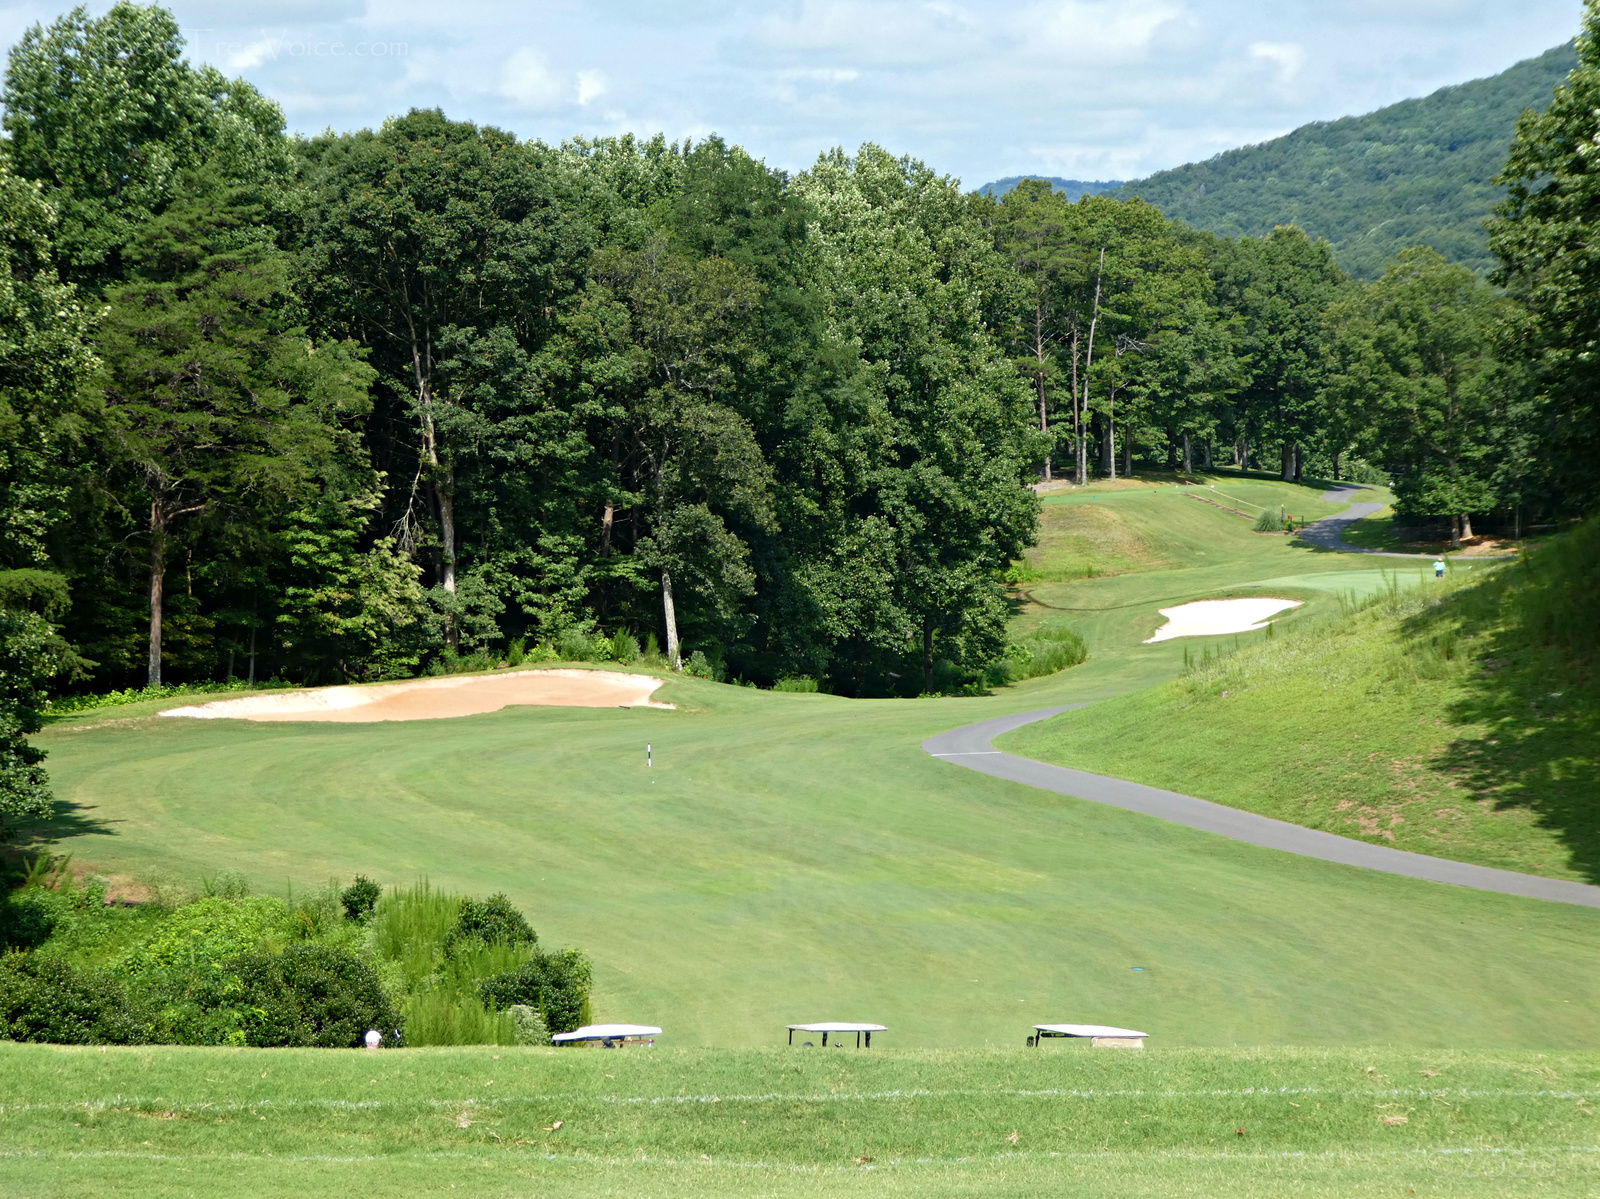 August 14, 2020 - the ridge on Hole 8 of the Bent Tree Golf Course